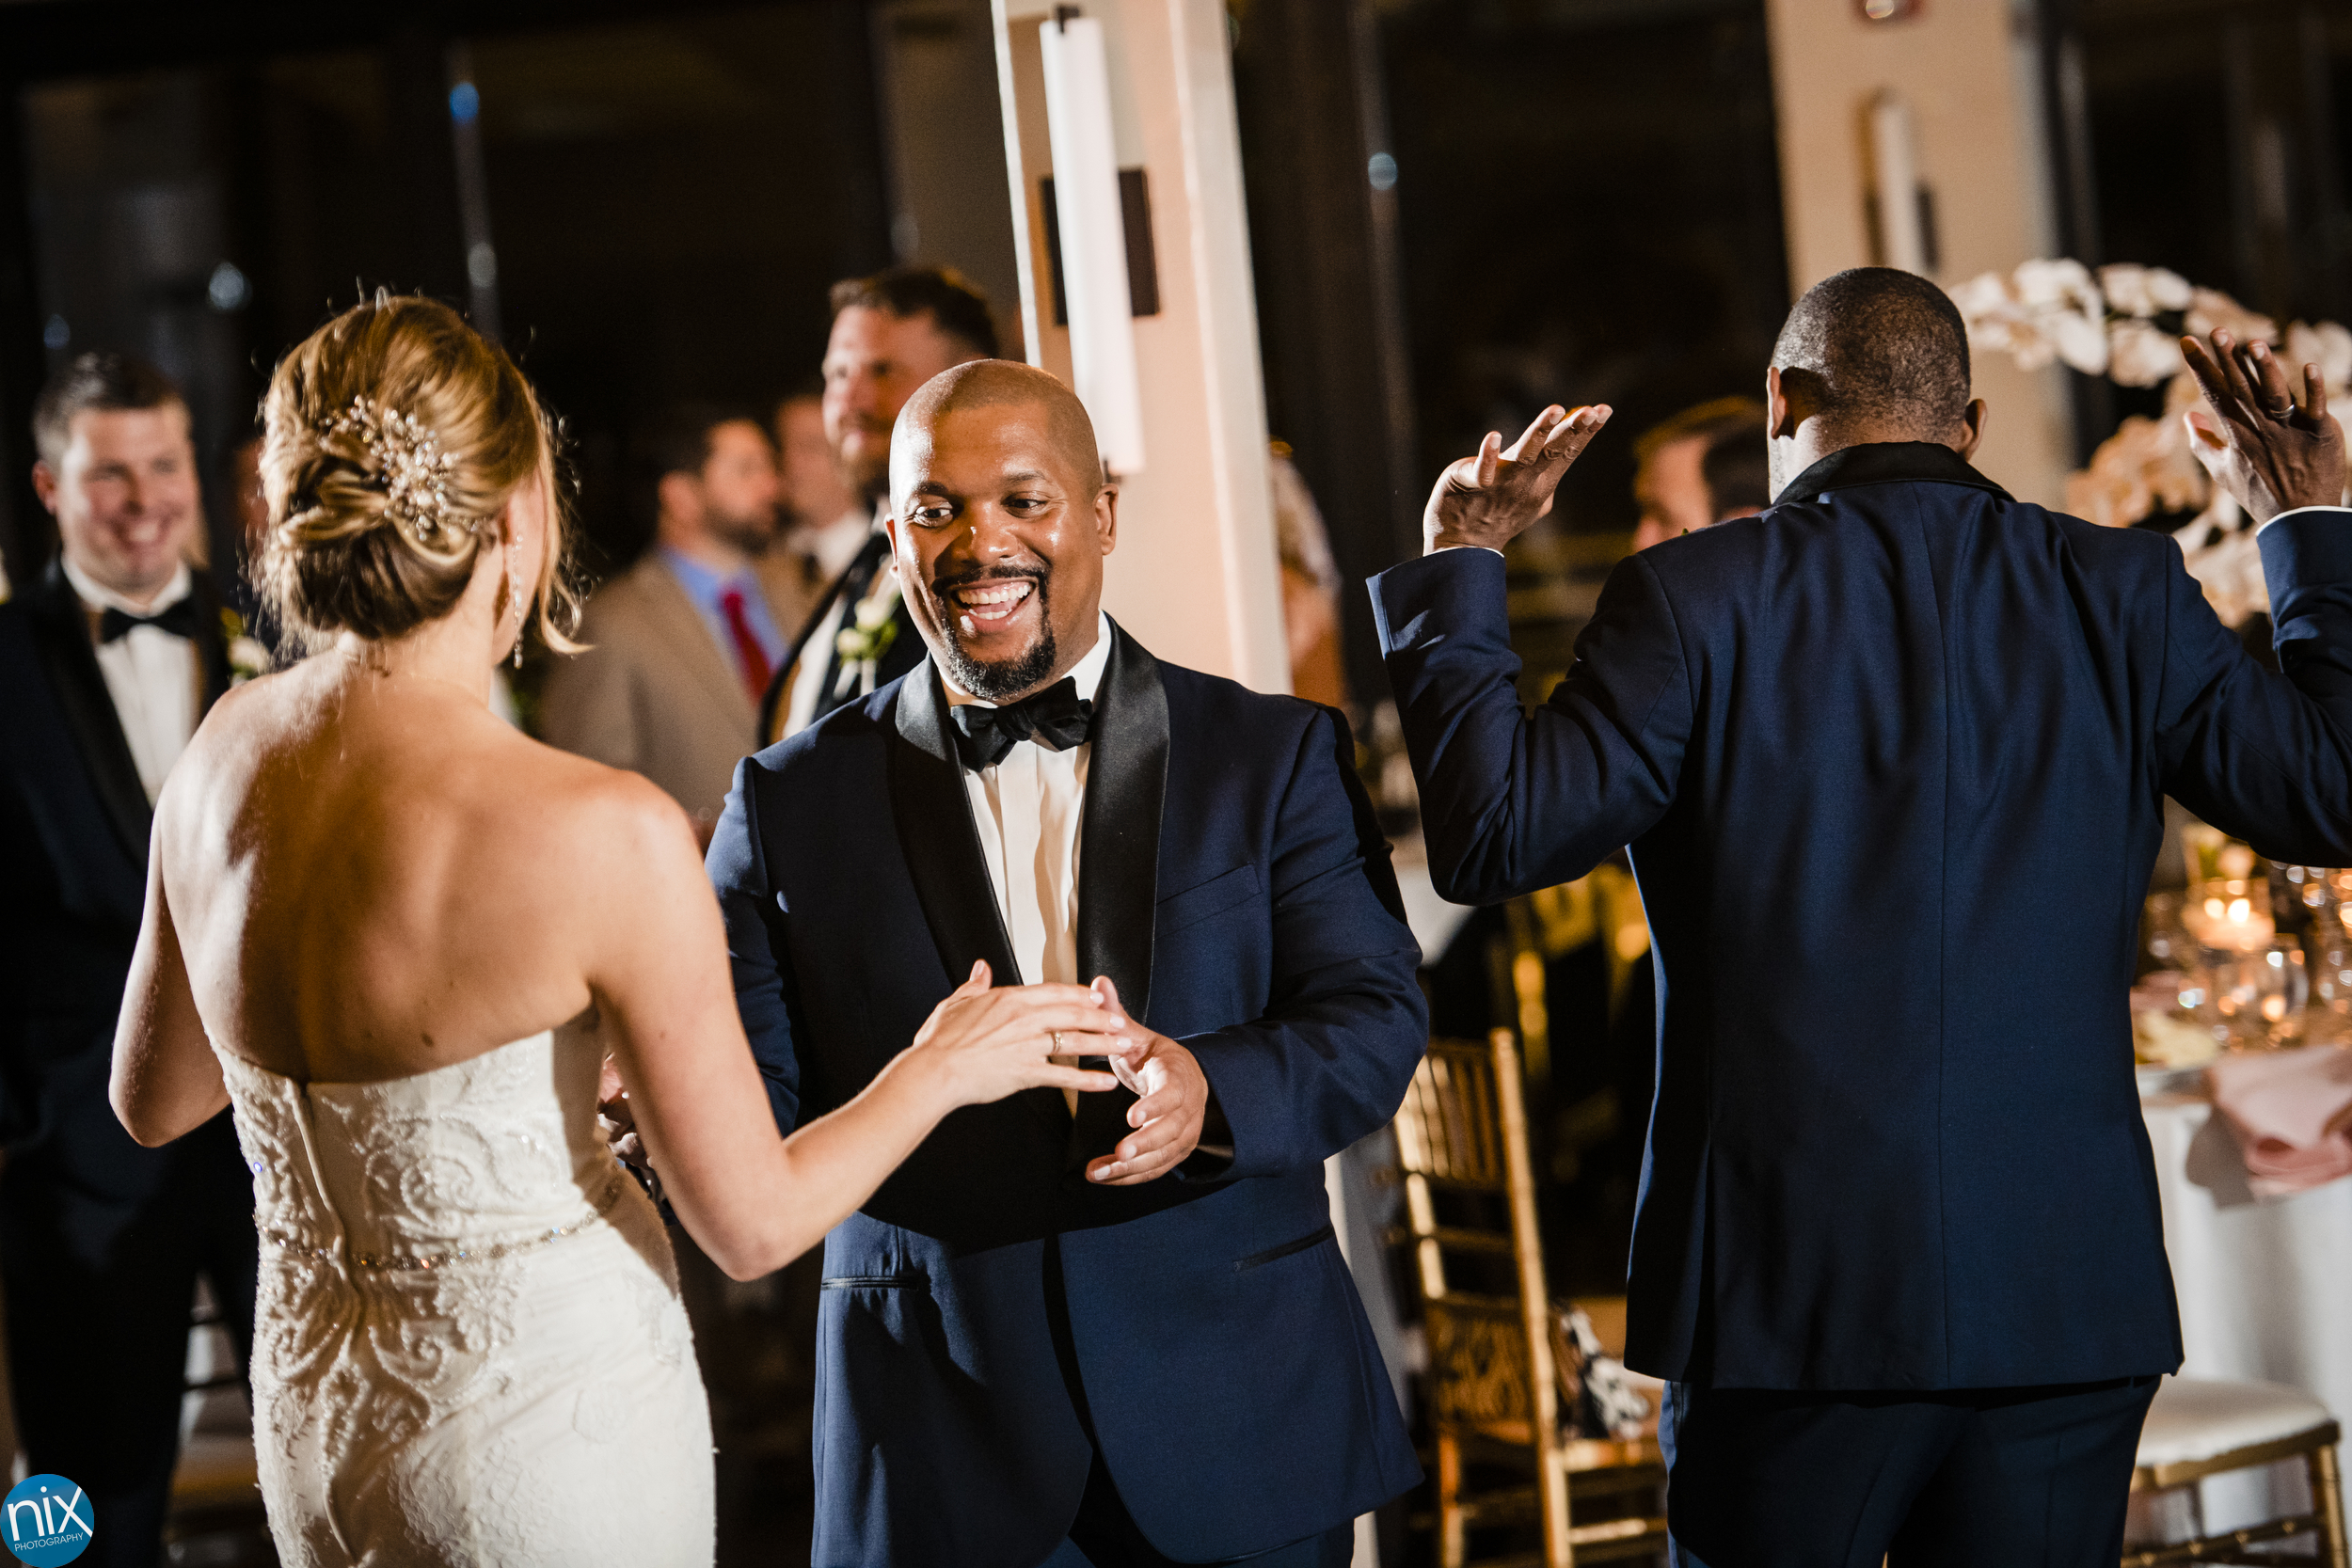 the Terrace at Cedar Hill groomsman dances with bride during wedding reception.jpg